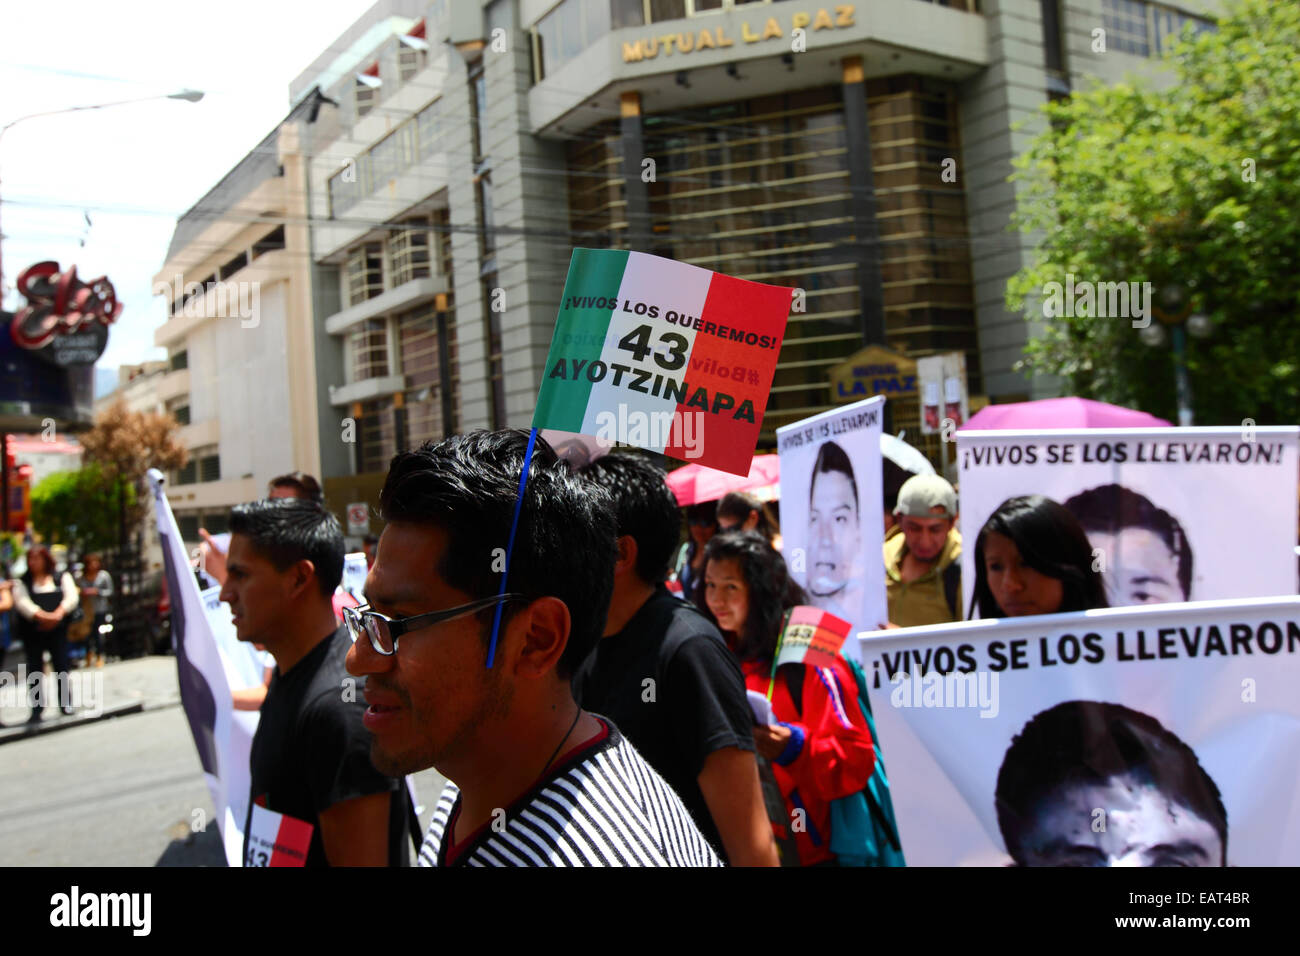 La Paz, Bolivia. 20th November, 2014. A protester wears a Mexican flag with 43 Ayotzinapa on it during a march to Stock Photo